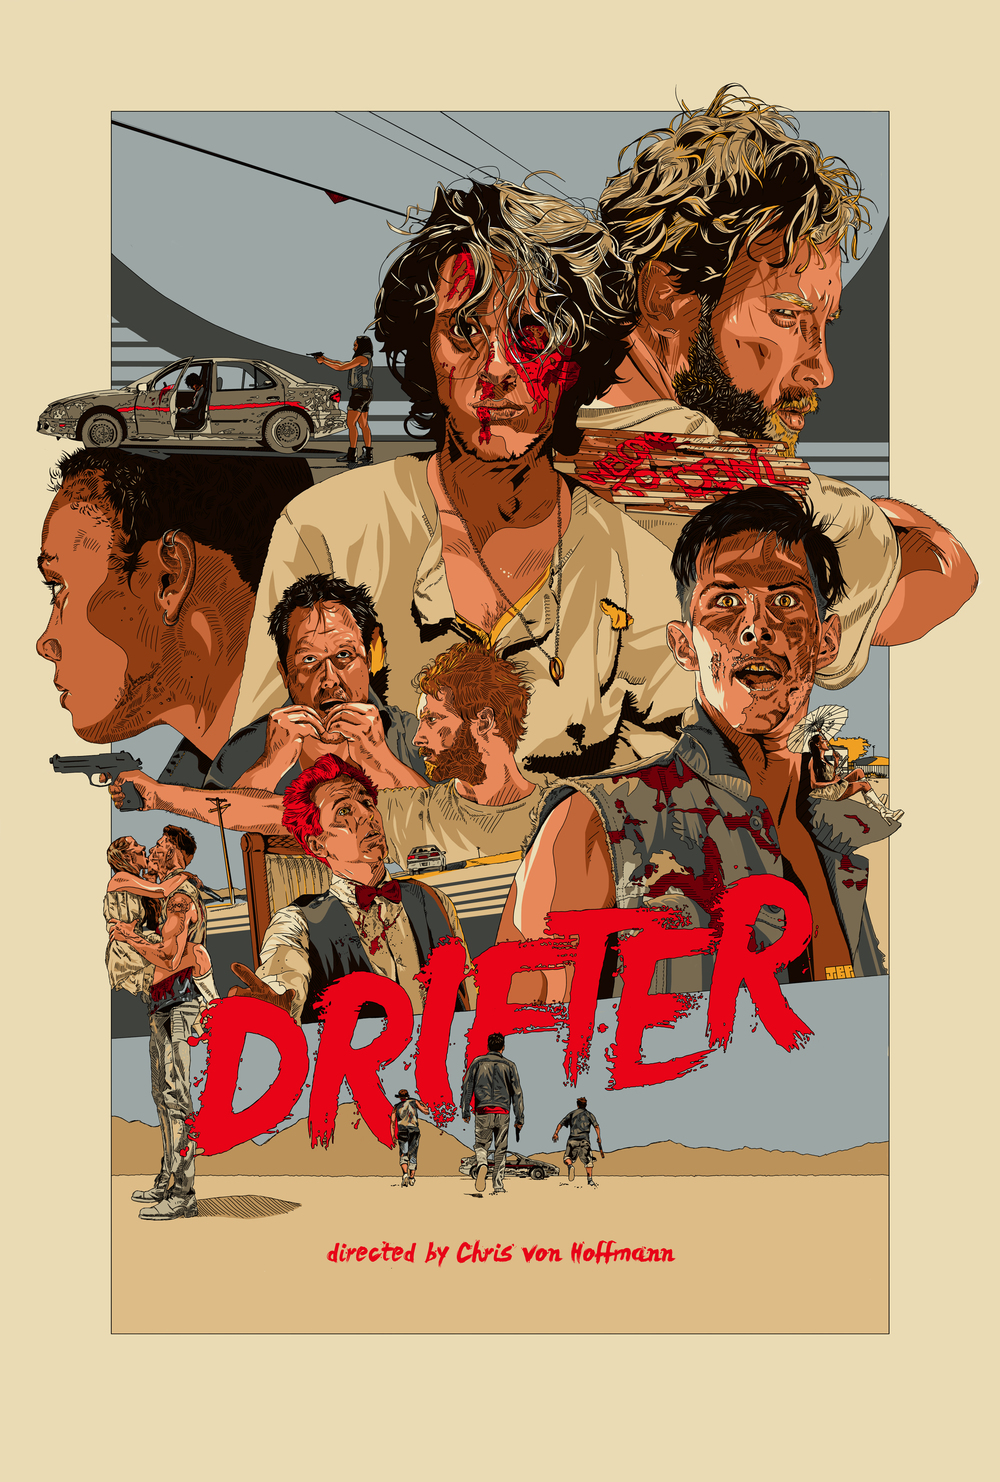 Drifter Official Movie Poster - Film and TV - Jonathan B Perez - cREAtive Castle Studios.jpg